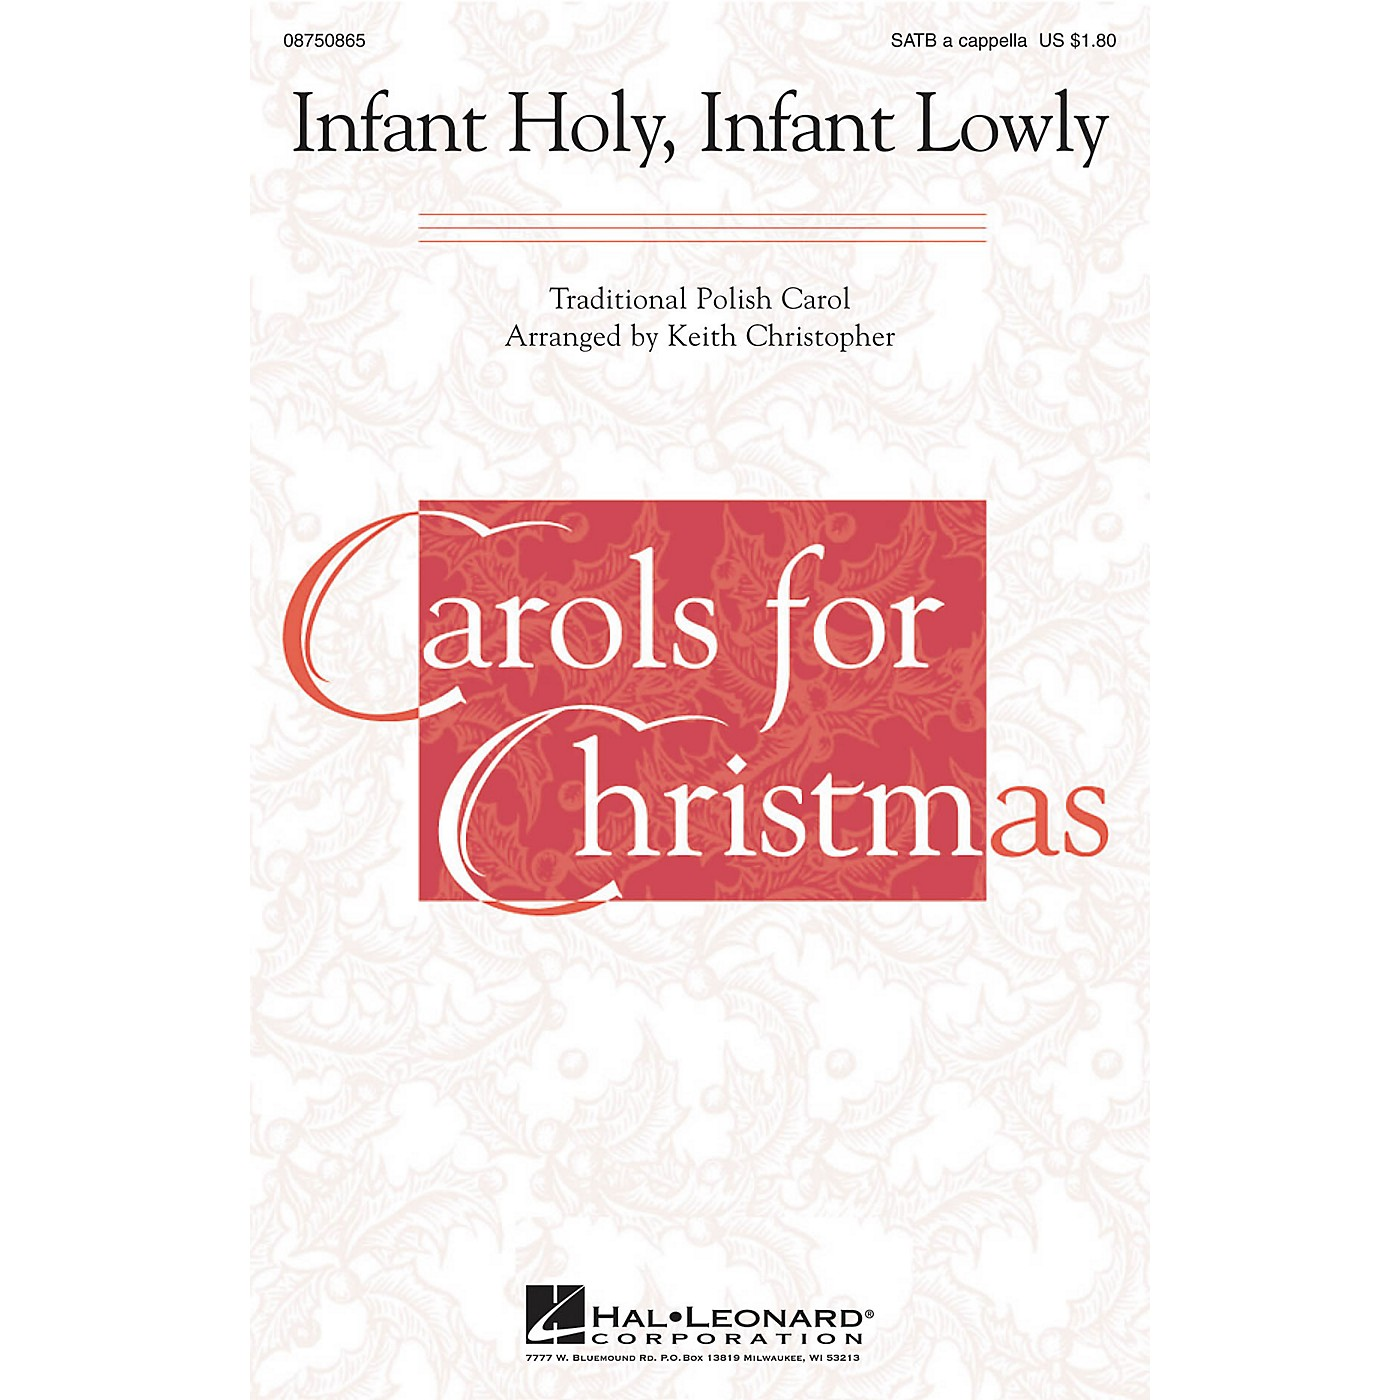 Hal Leonard Infant Holy, Infant Lowly SATB a cappella arranged by Keith Christopher thumbnail